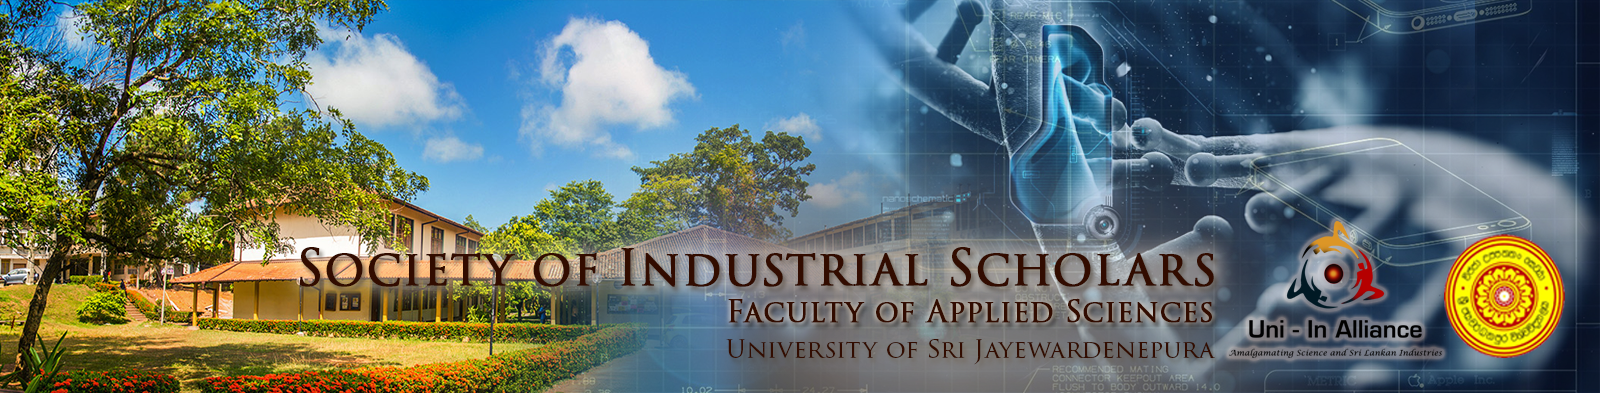 Society of Industrial Scholars